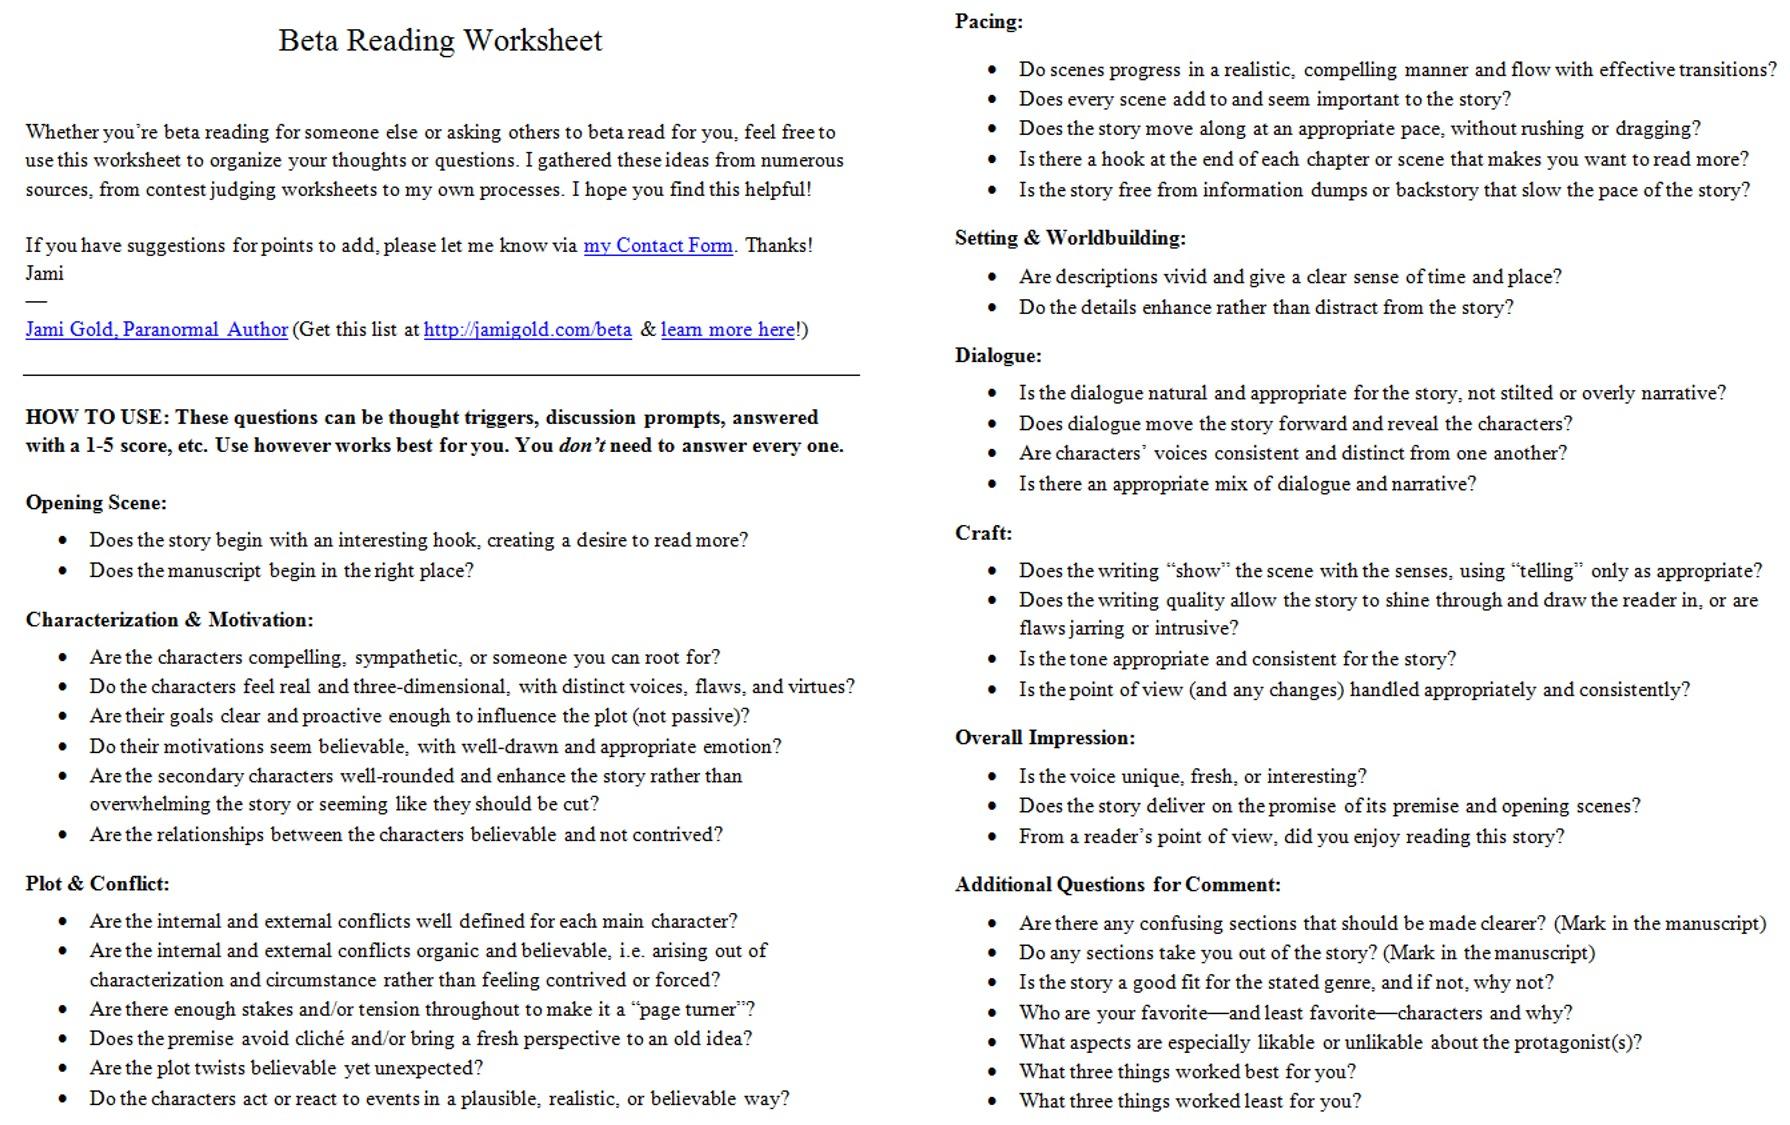 Aldiablosus  Marvellous Worksheets For Writers  Jami Gold Paranormal Author With Great Screen Shot Of The Twopage Beta Reading Worksheet With Beautiful Physics Free Body Diagram Worksheet Also Patterns For Preschoolers Worksheets In Addition Delegation Worksheet And Geometry  Worksheets As Well As Basic Fraction Worksheet Additionally Complementary And Supplementary Worksheet From Jamigoldcom With Aldiablosus  Great Worksheets For Writers  Jami Gold Paranormal Author With Beautiful Screen Shot Of The Twopage Beta Reading Worksheet And Marvellous Physics Free Body Diagram Worksheet Also Patterns For Preschoolers Worksheets In Addition Delegation Worksheet From Jamigoldcom